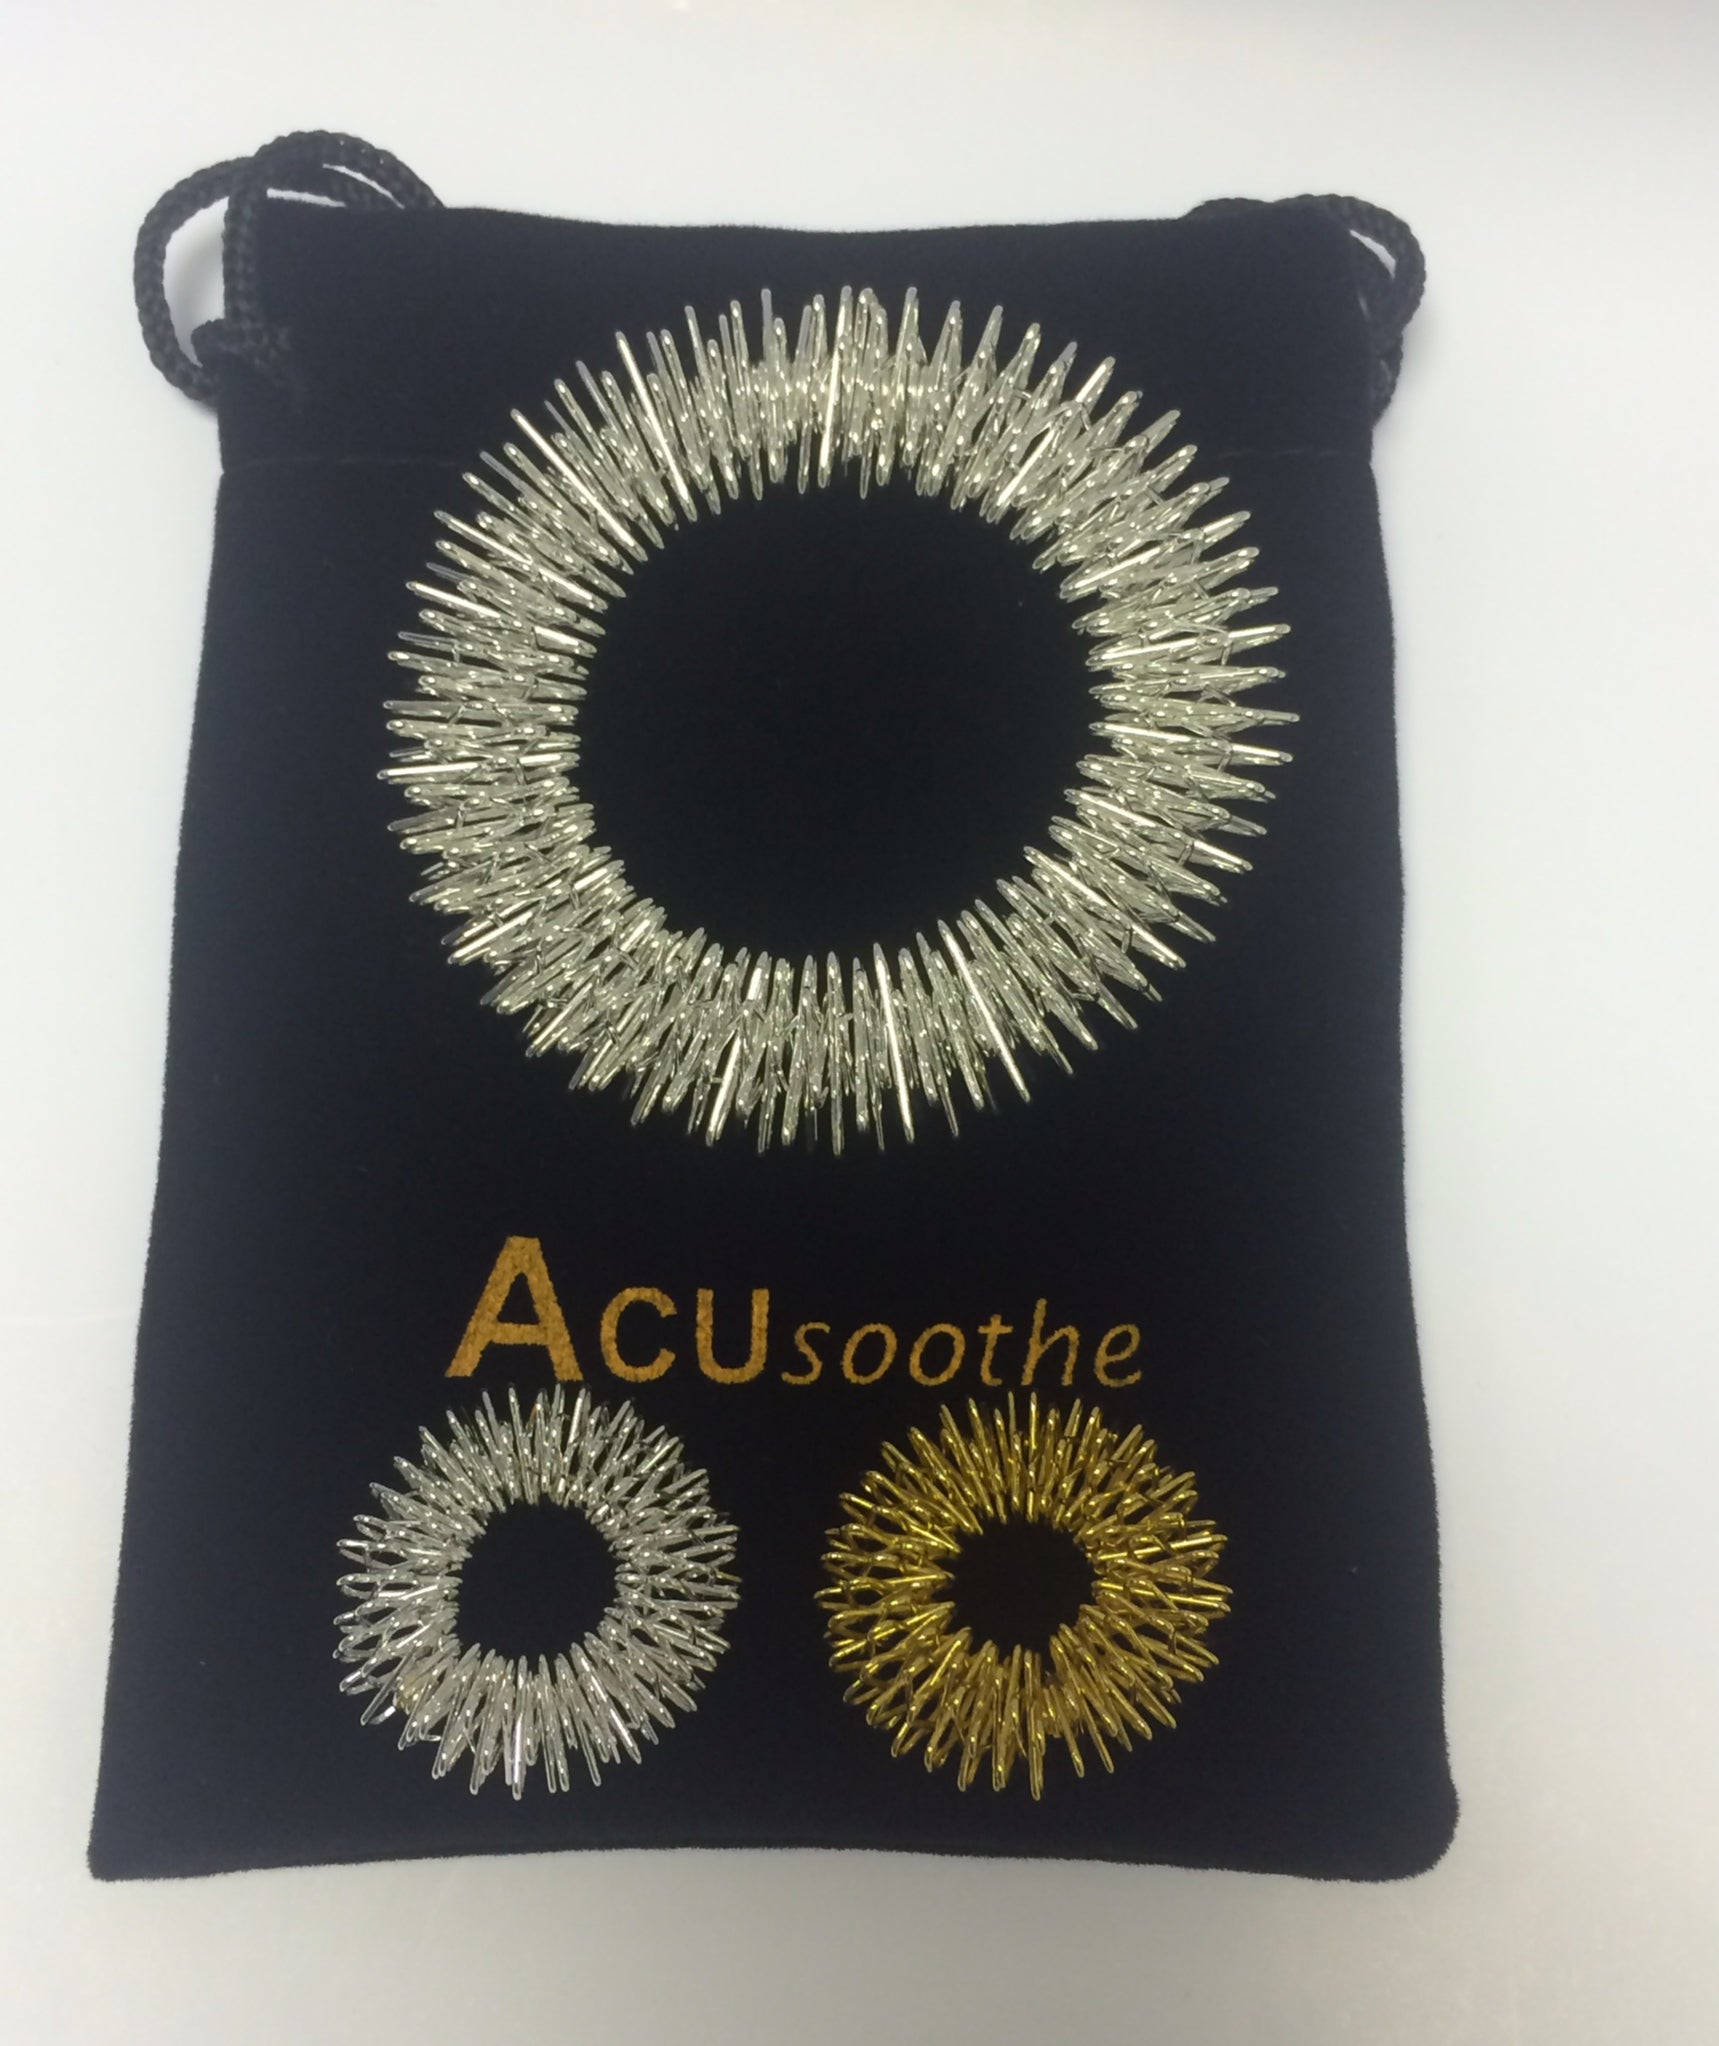 Acusoothe Acupressure Bracelet Silver and Rings Silver and Gold, Bracelets - Image 0